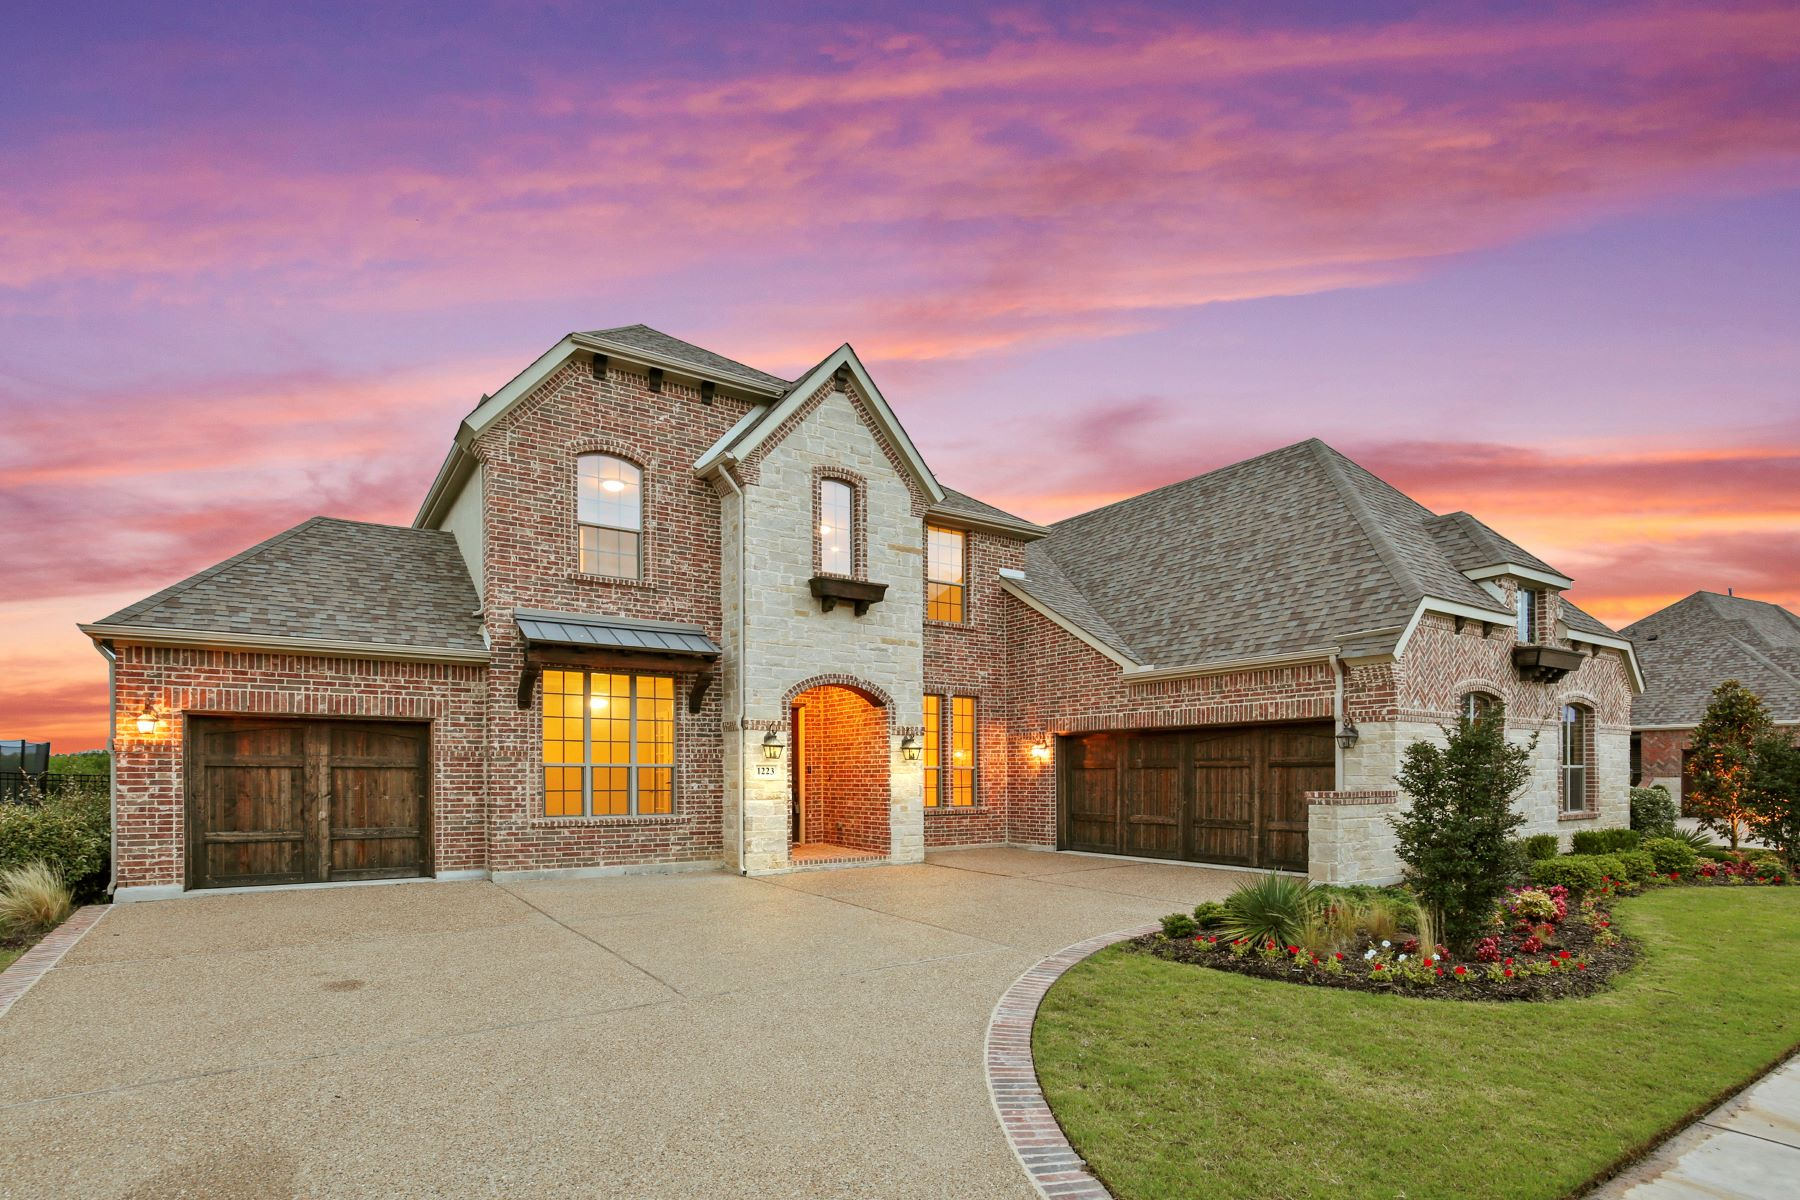 Single Family Homes for Sale at Location, Tranquility and Luxury Living 1223 Blue Lake Boulevard Arlington, Texas 76005 United States